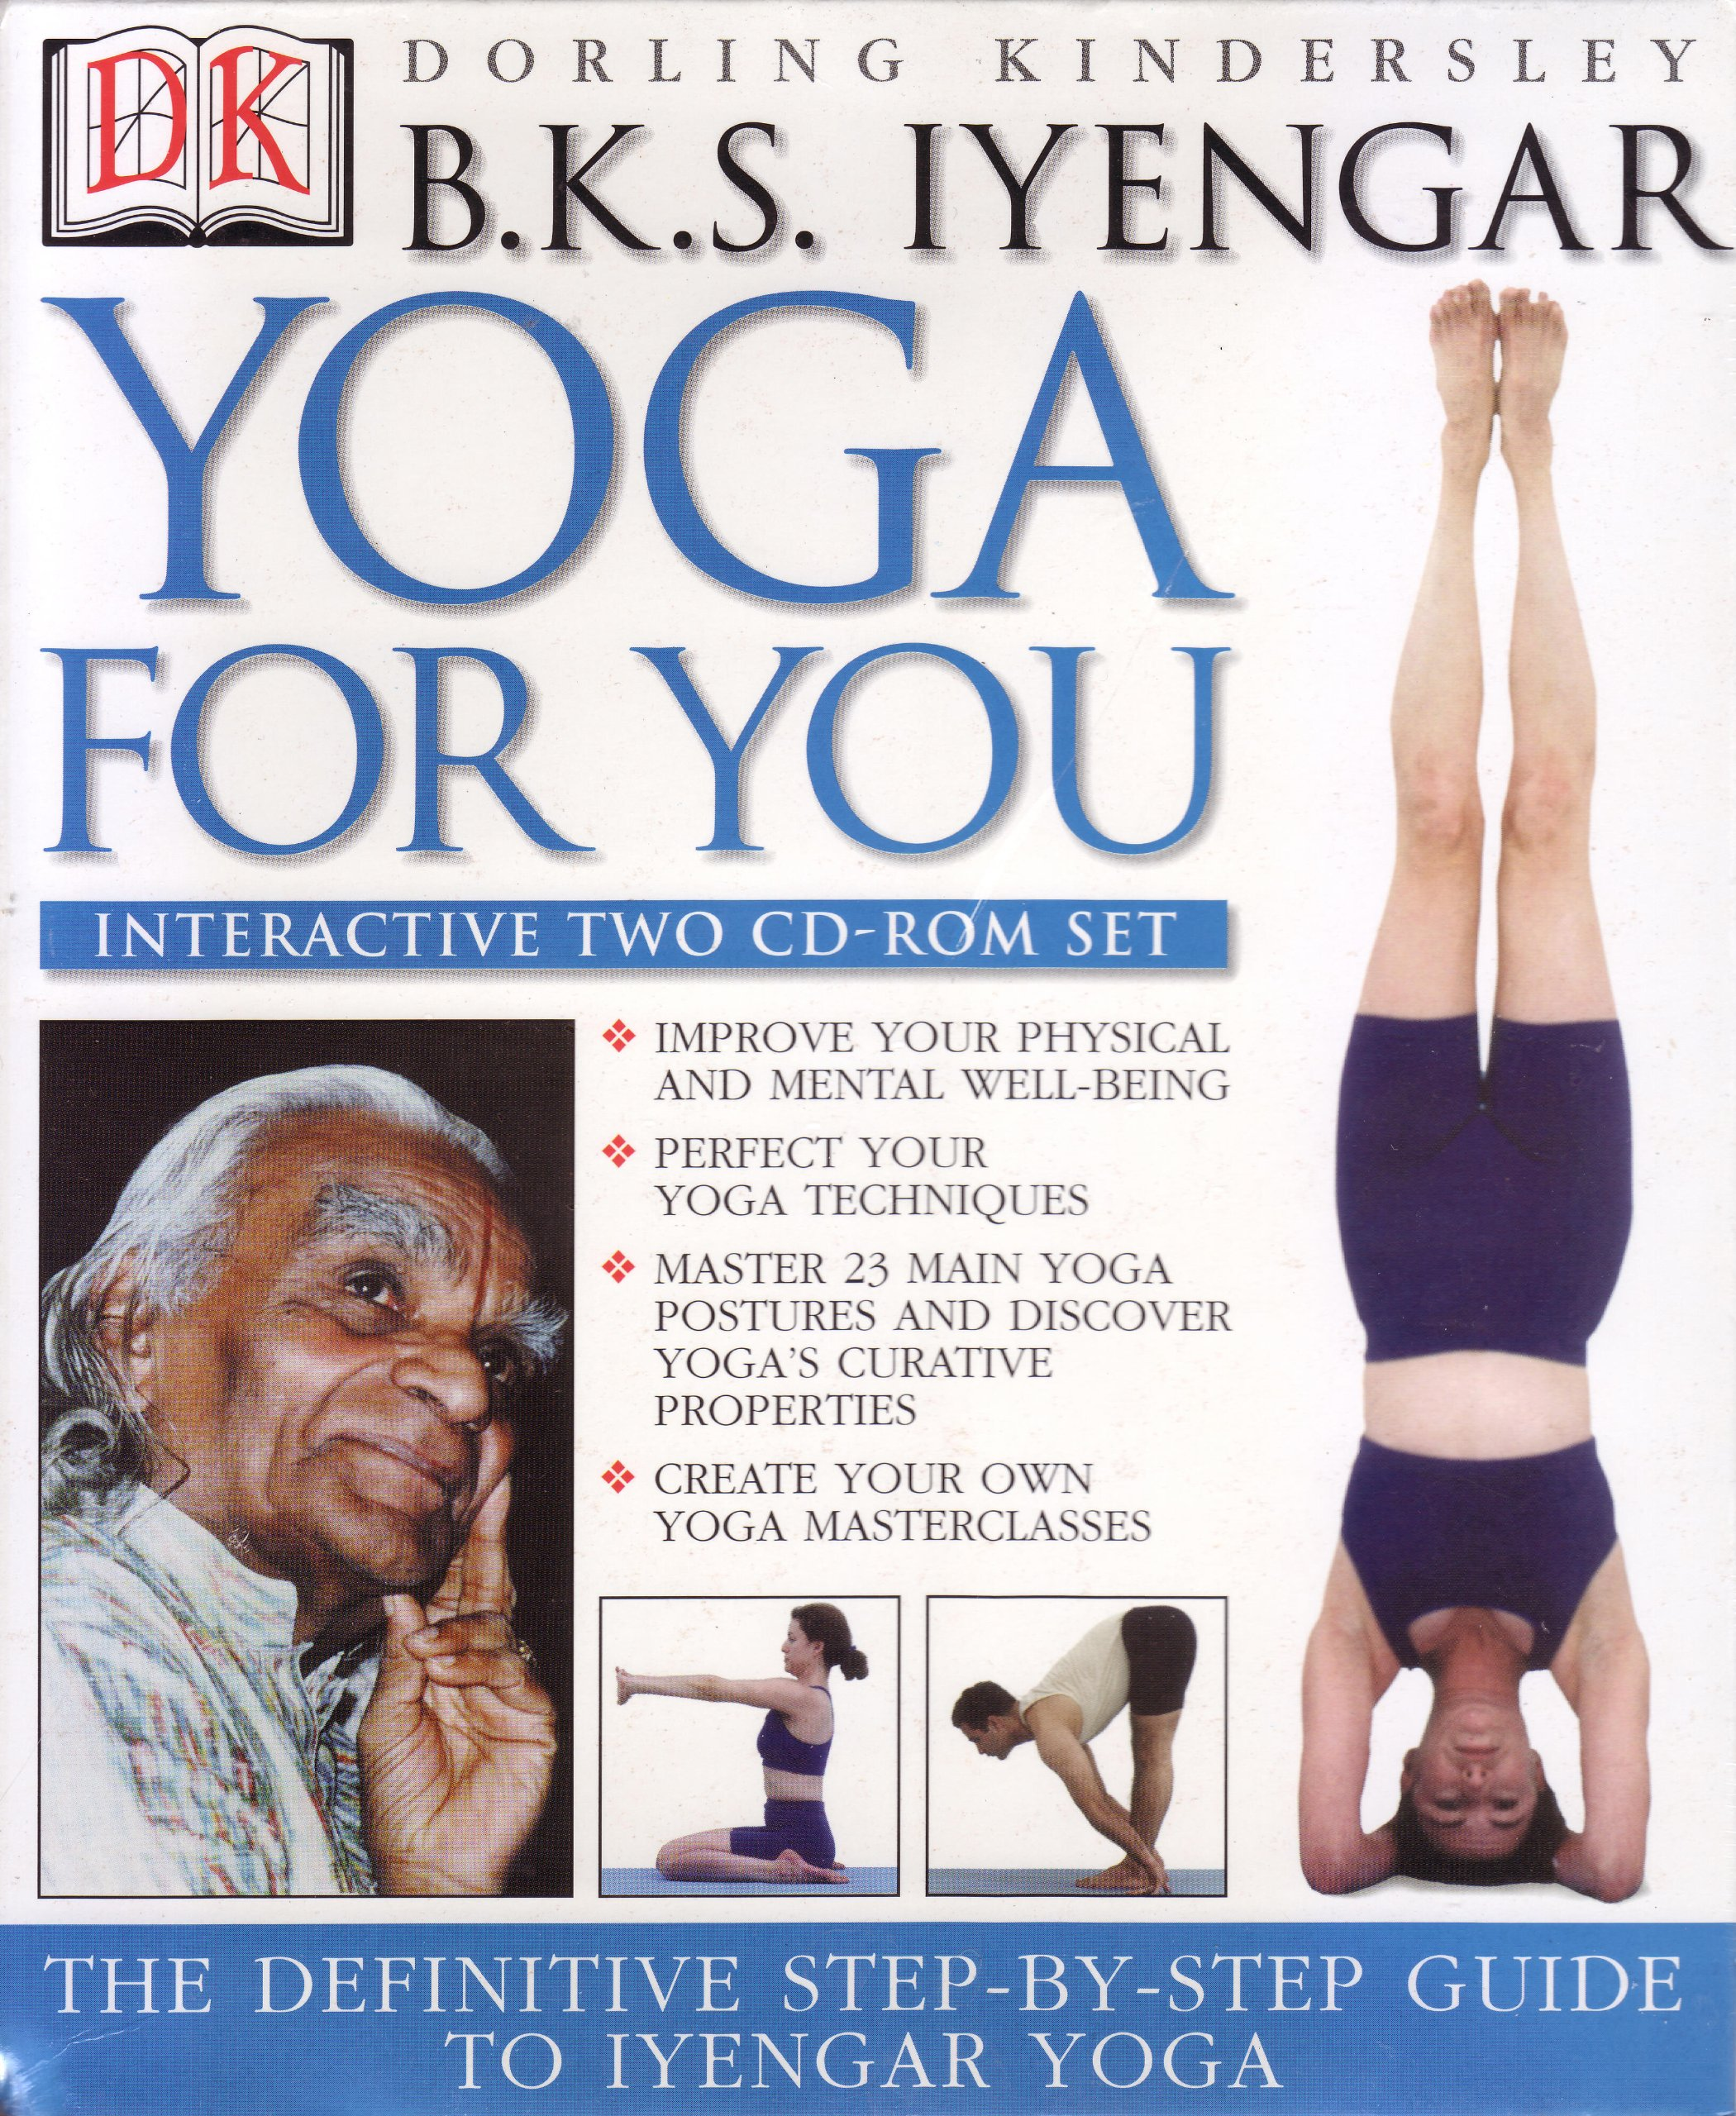 Amazon.com: Yoga For You (Interactive Two CD-Rom set ...